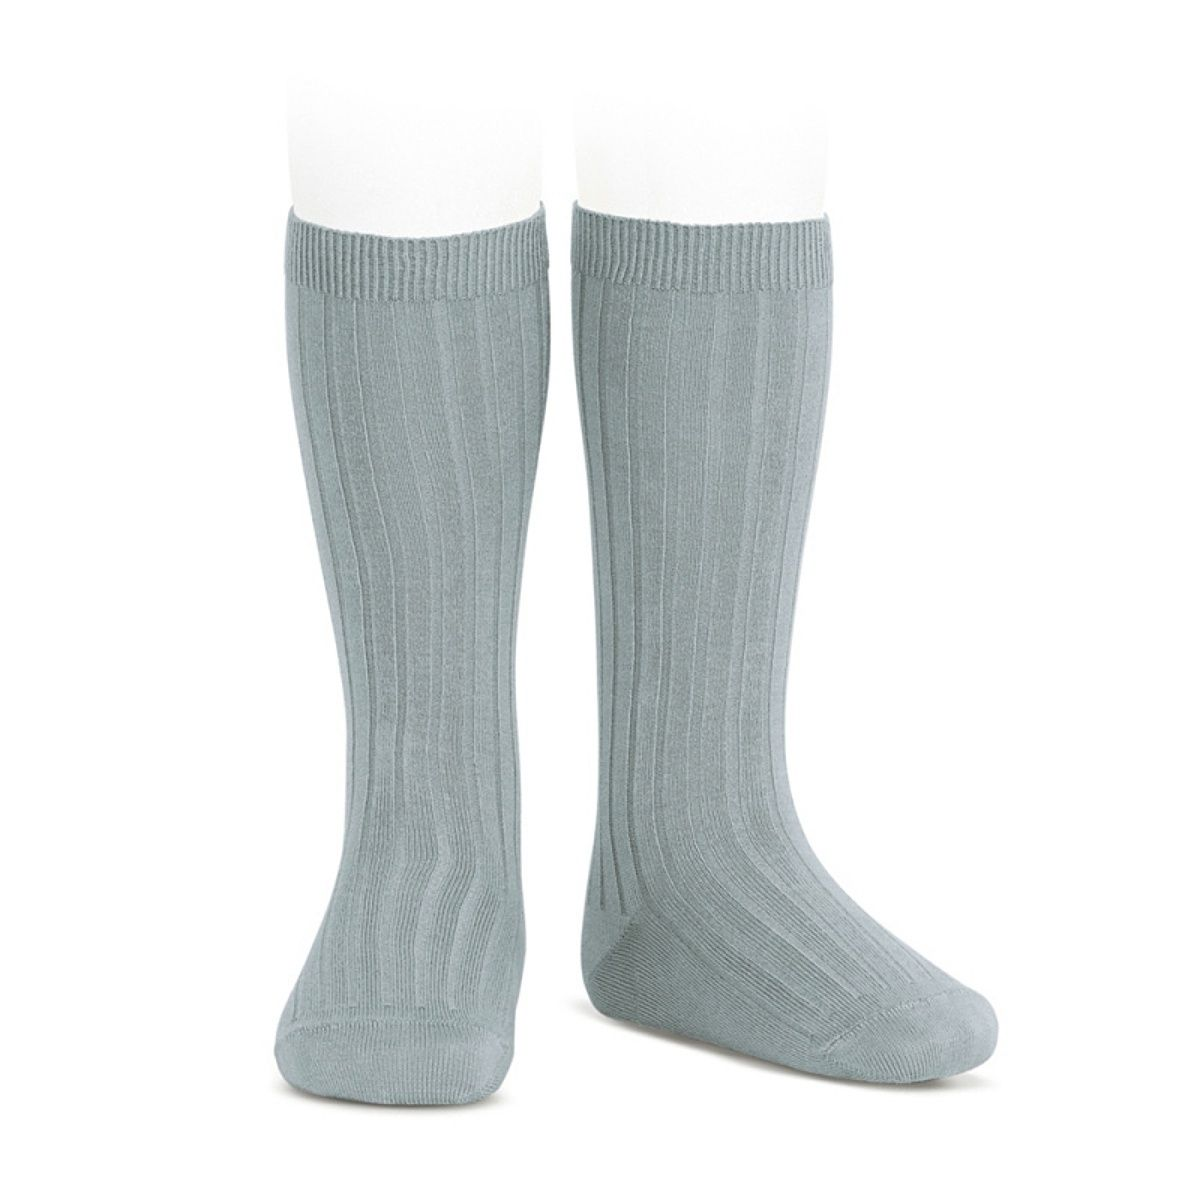 Wide Ribbed Cotton Knee High Socks dry green - Condor